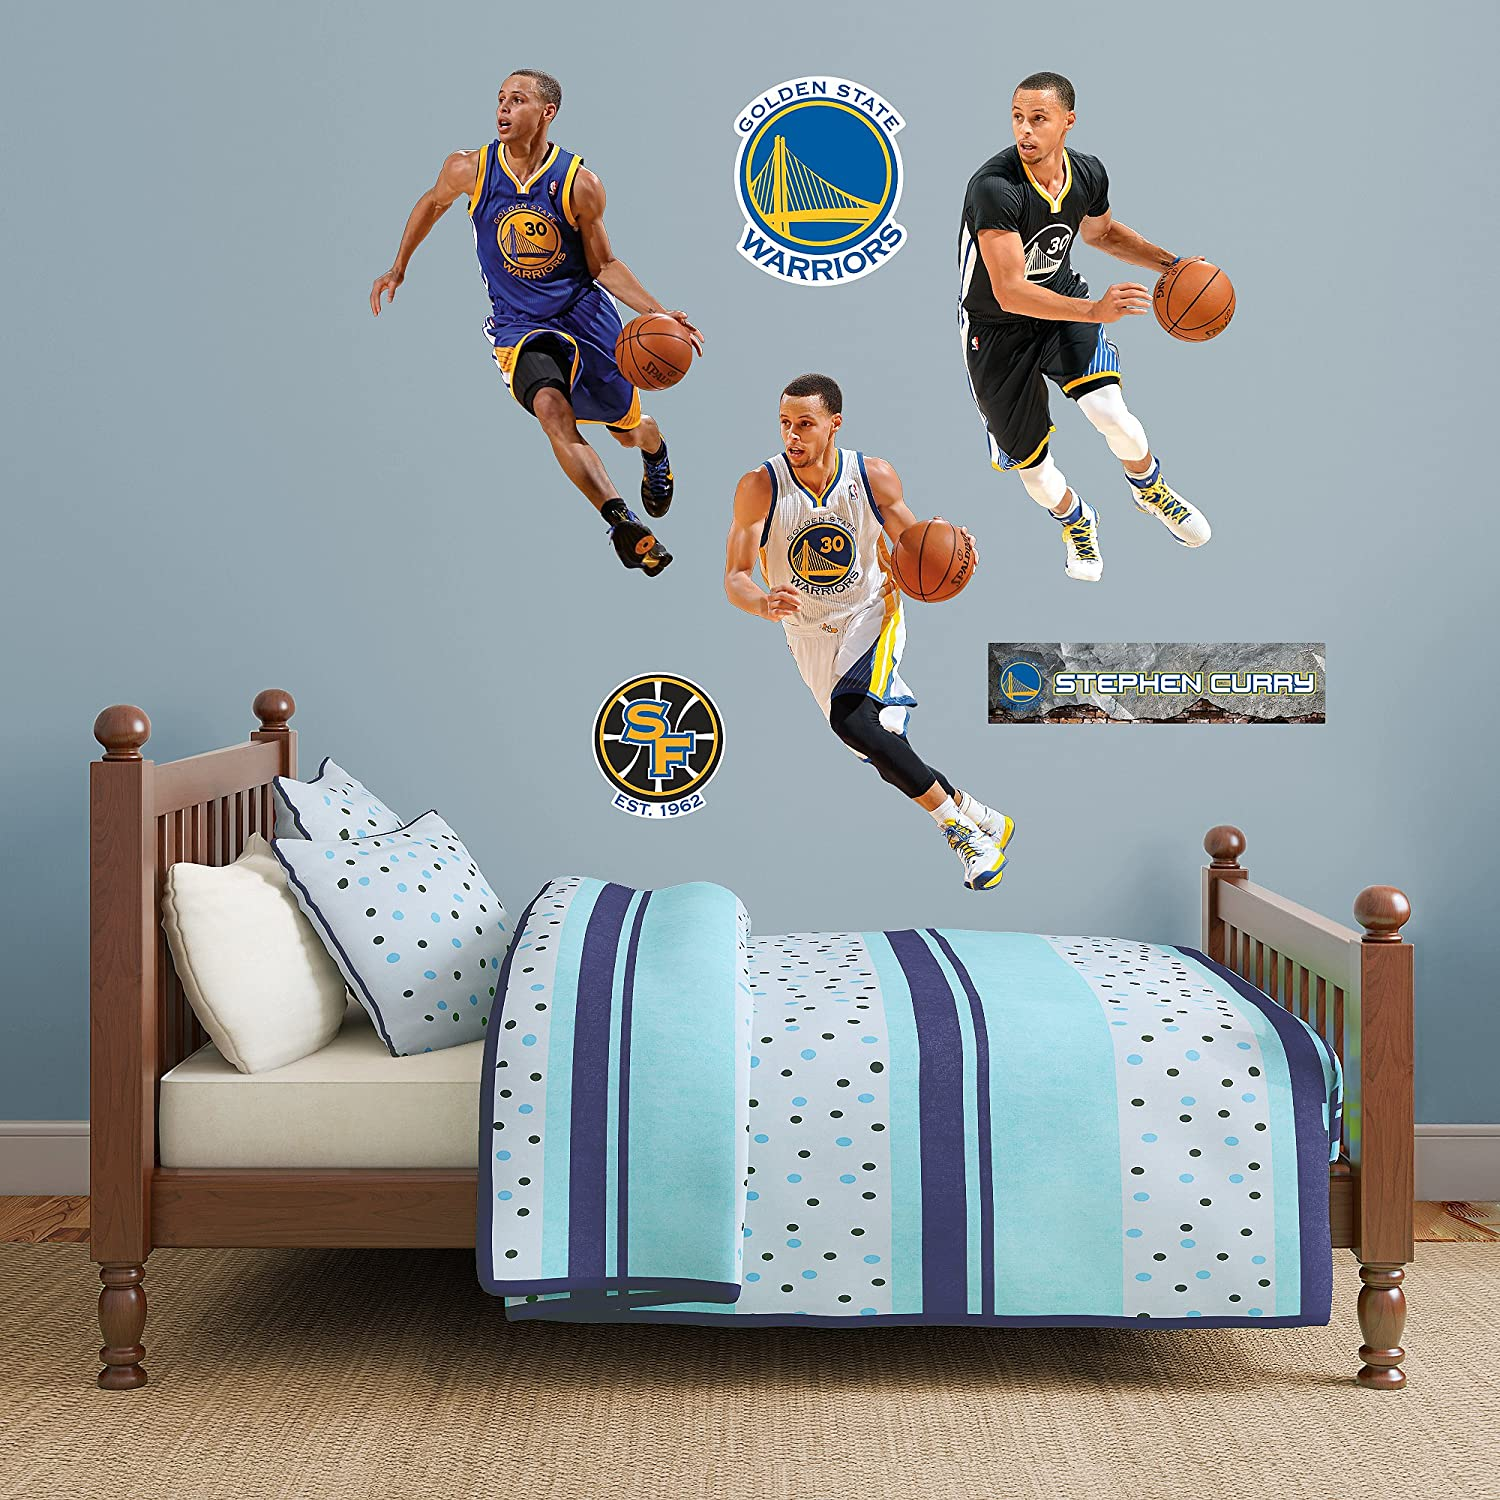 Amazon nba golden state warriors stephen curry hero pack amazon nba golden state warriors stephen curry hero pack fathead real big decals 44 x 33 sports outdoors amipublicfo Image collections